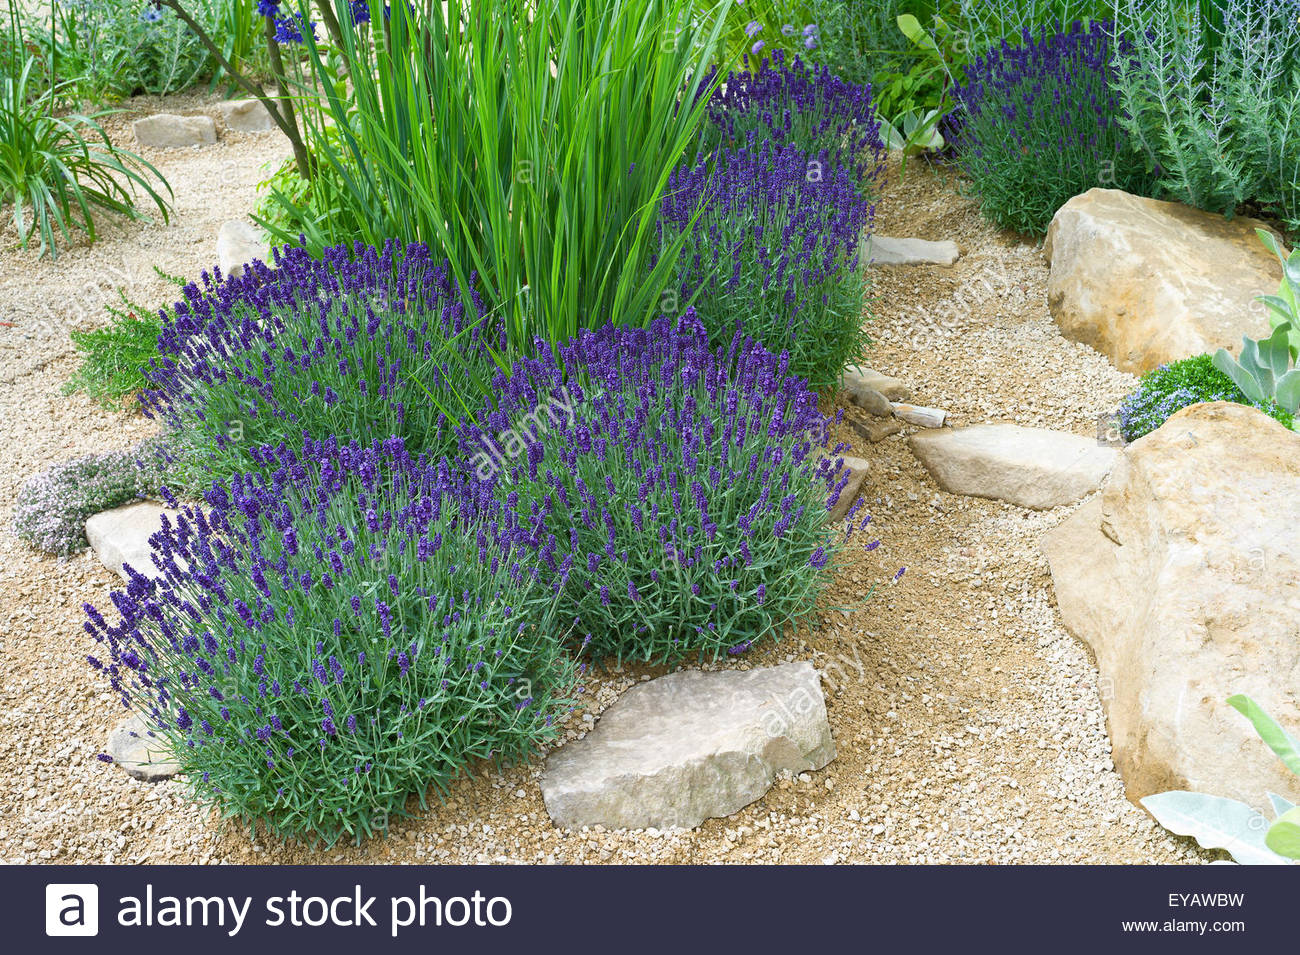 lavendel hidcote blue lavender bushes perennials. Black Bedroom Furniture Sets. Home Design Ideas